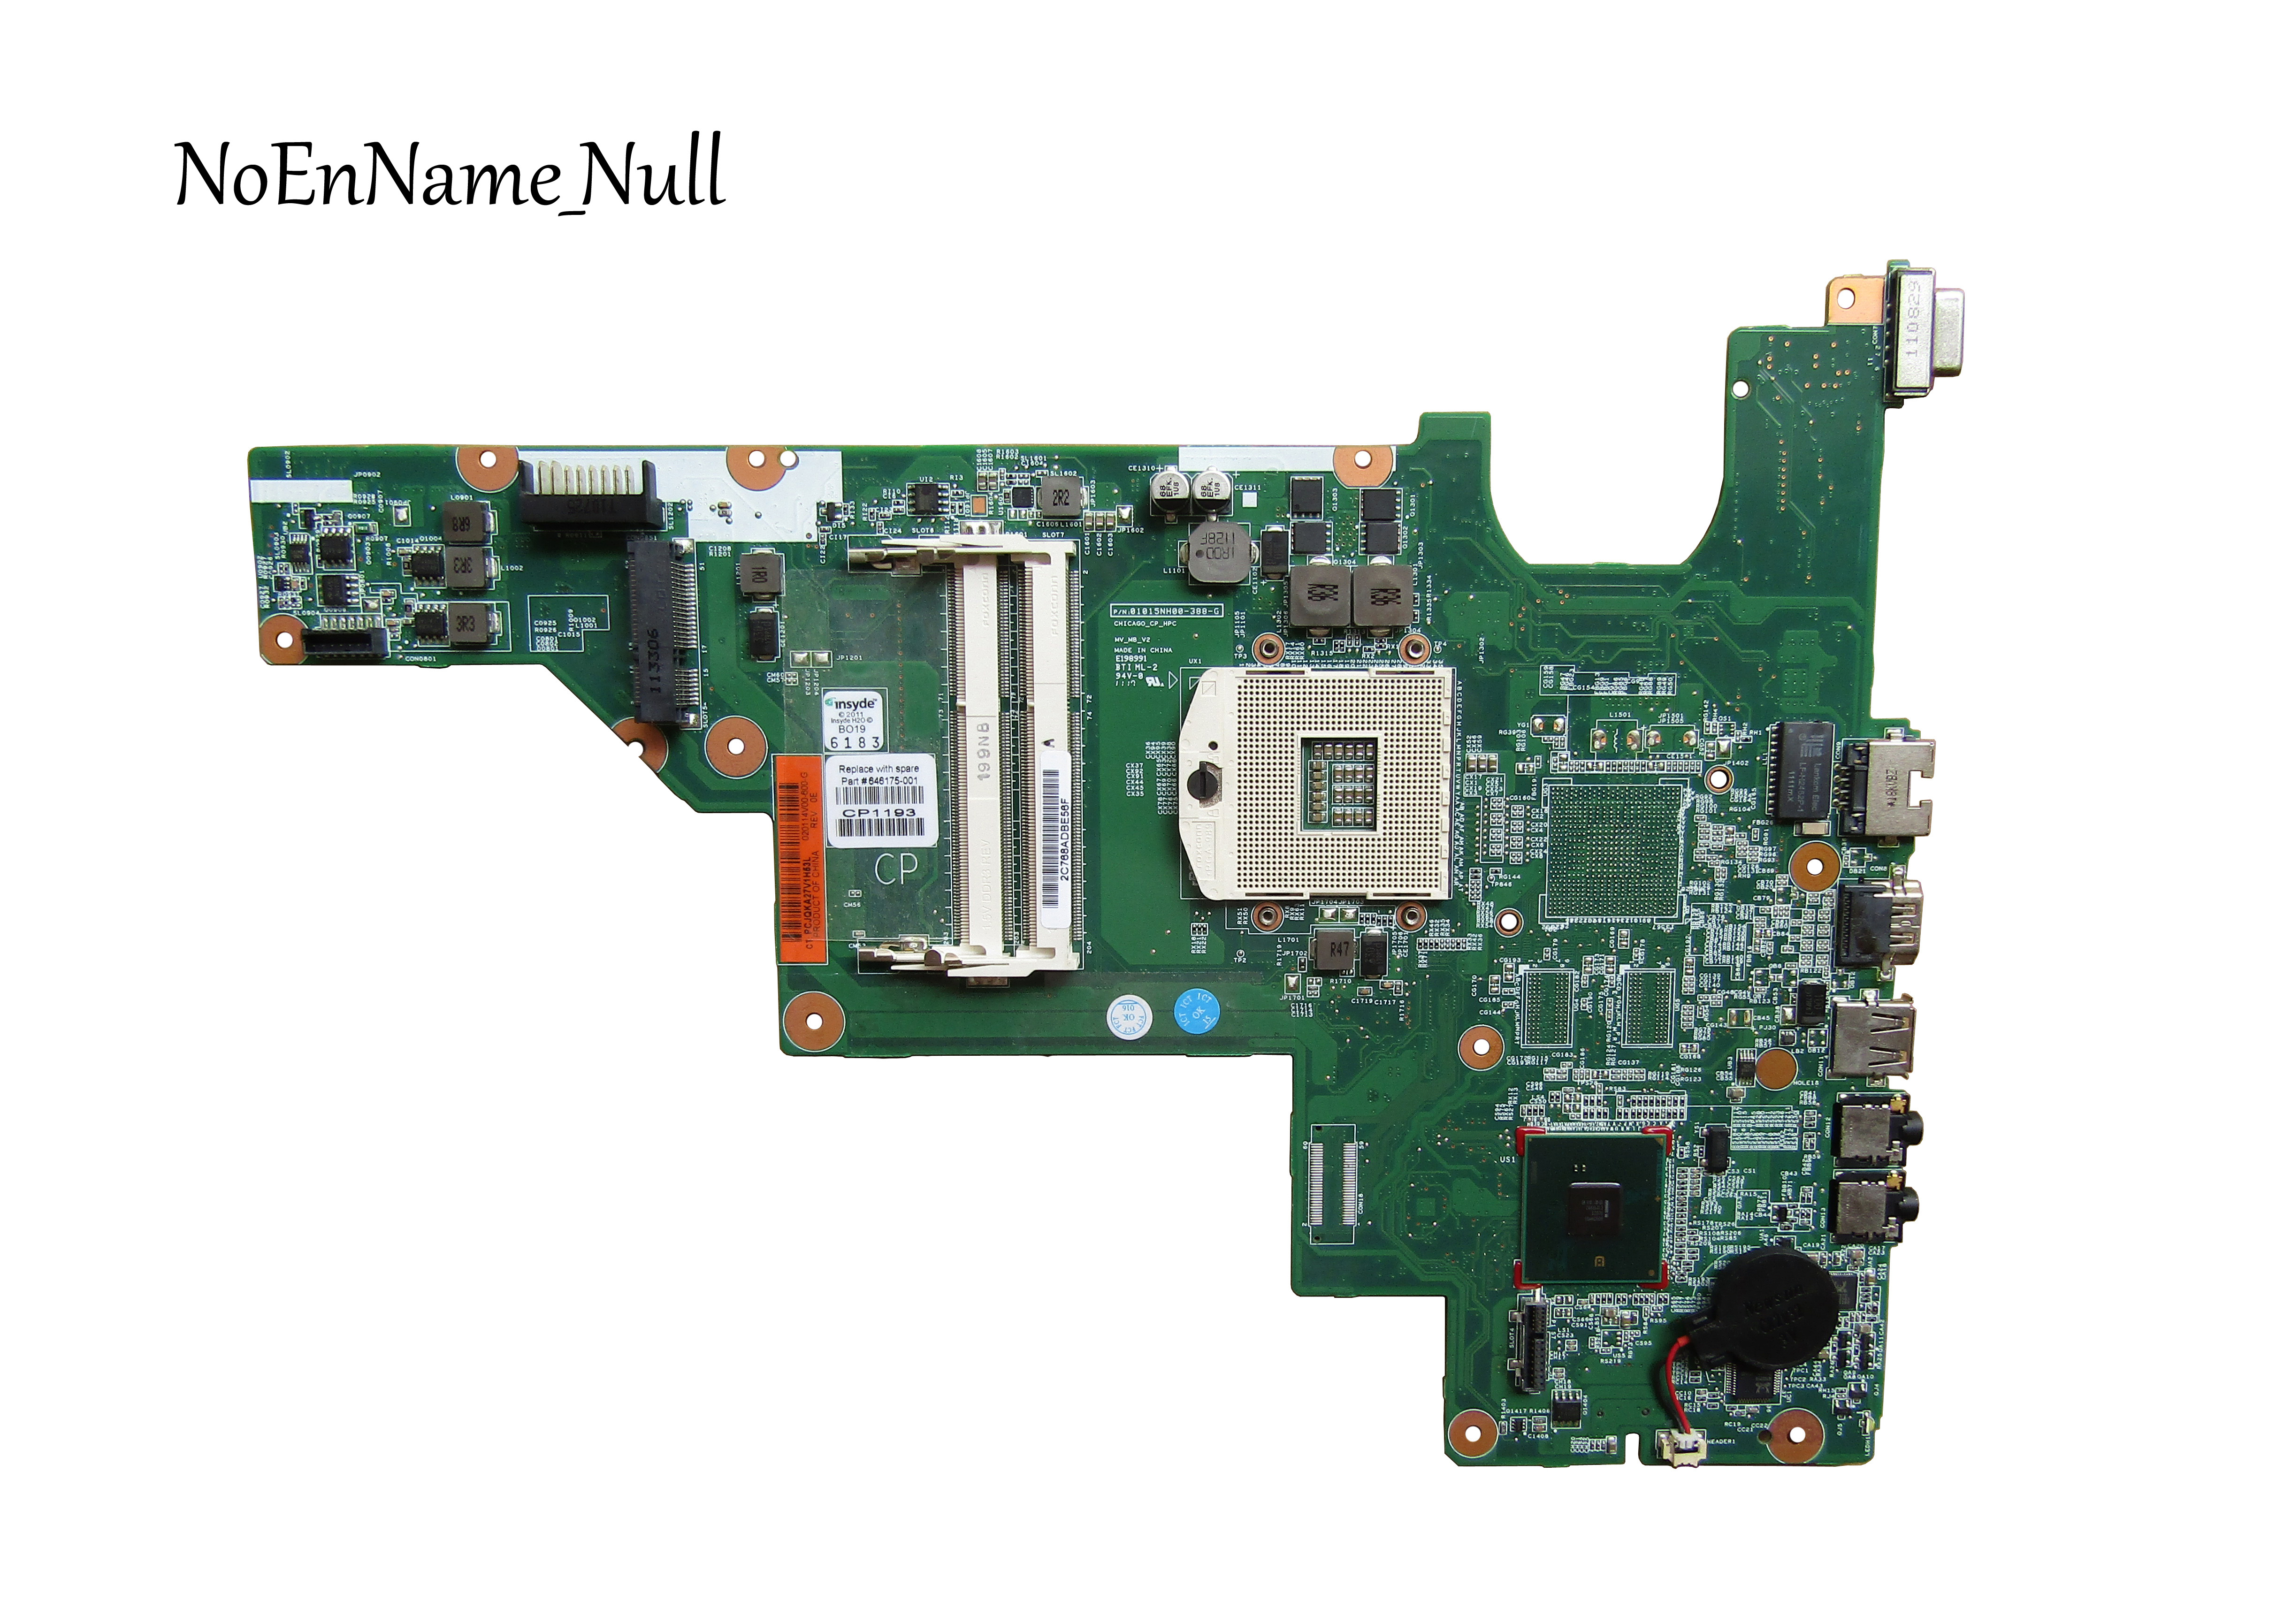 646669-001 for HP CQ43 for hp 631 Notebook for hp 430 for hp 630 laptop motherboard HM55 integrated DDR3 100% working646669-001 for HP CQ43 for hp 631 Notebook for hp 430 for hp 630 laptop motherboard HM55 integrated DDR3 100% working